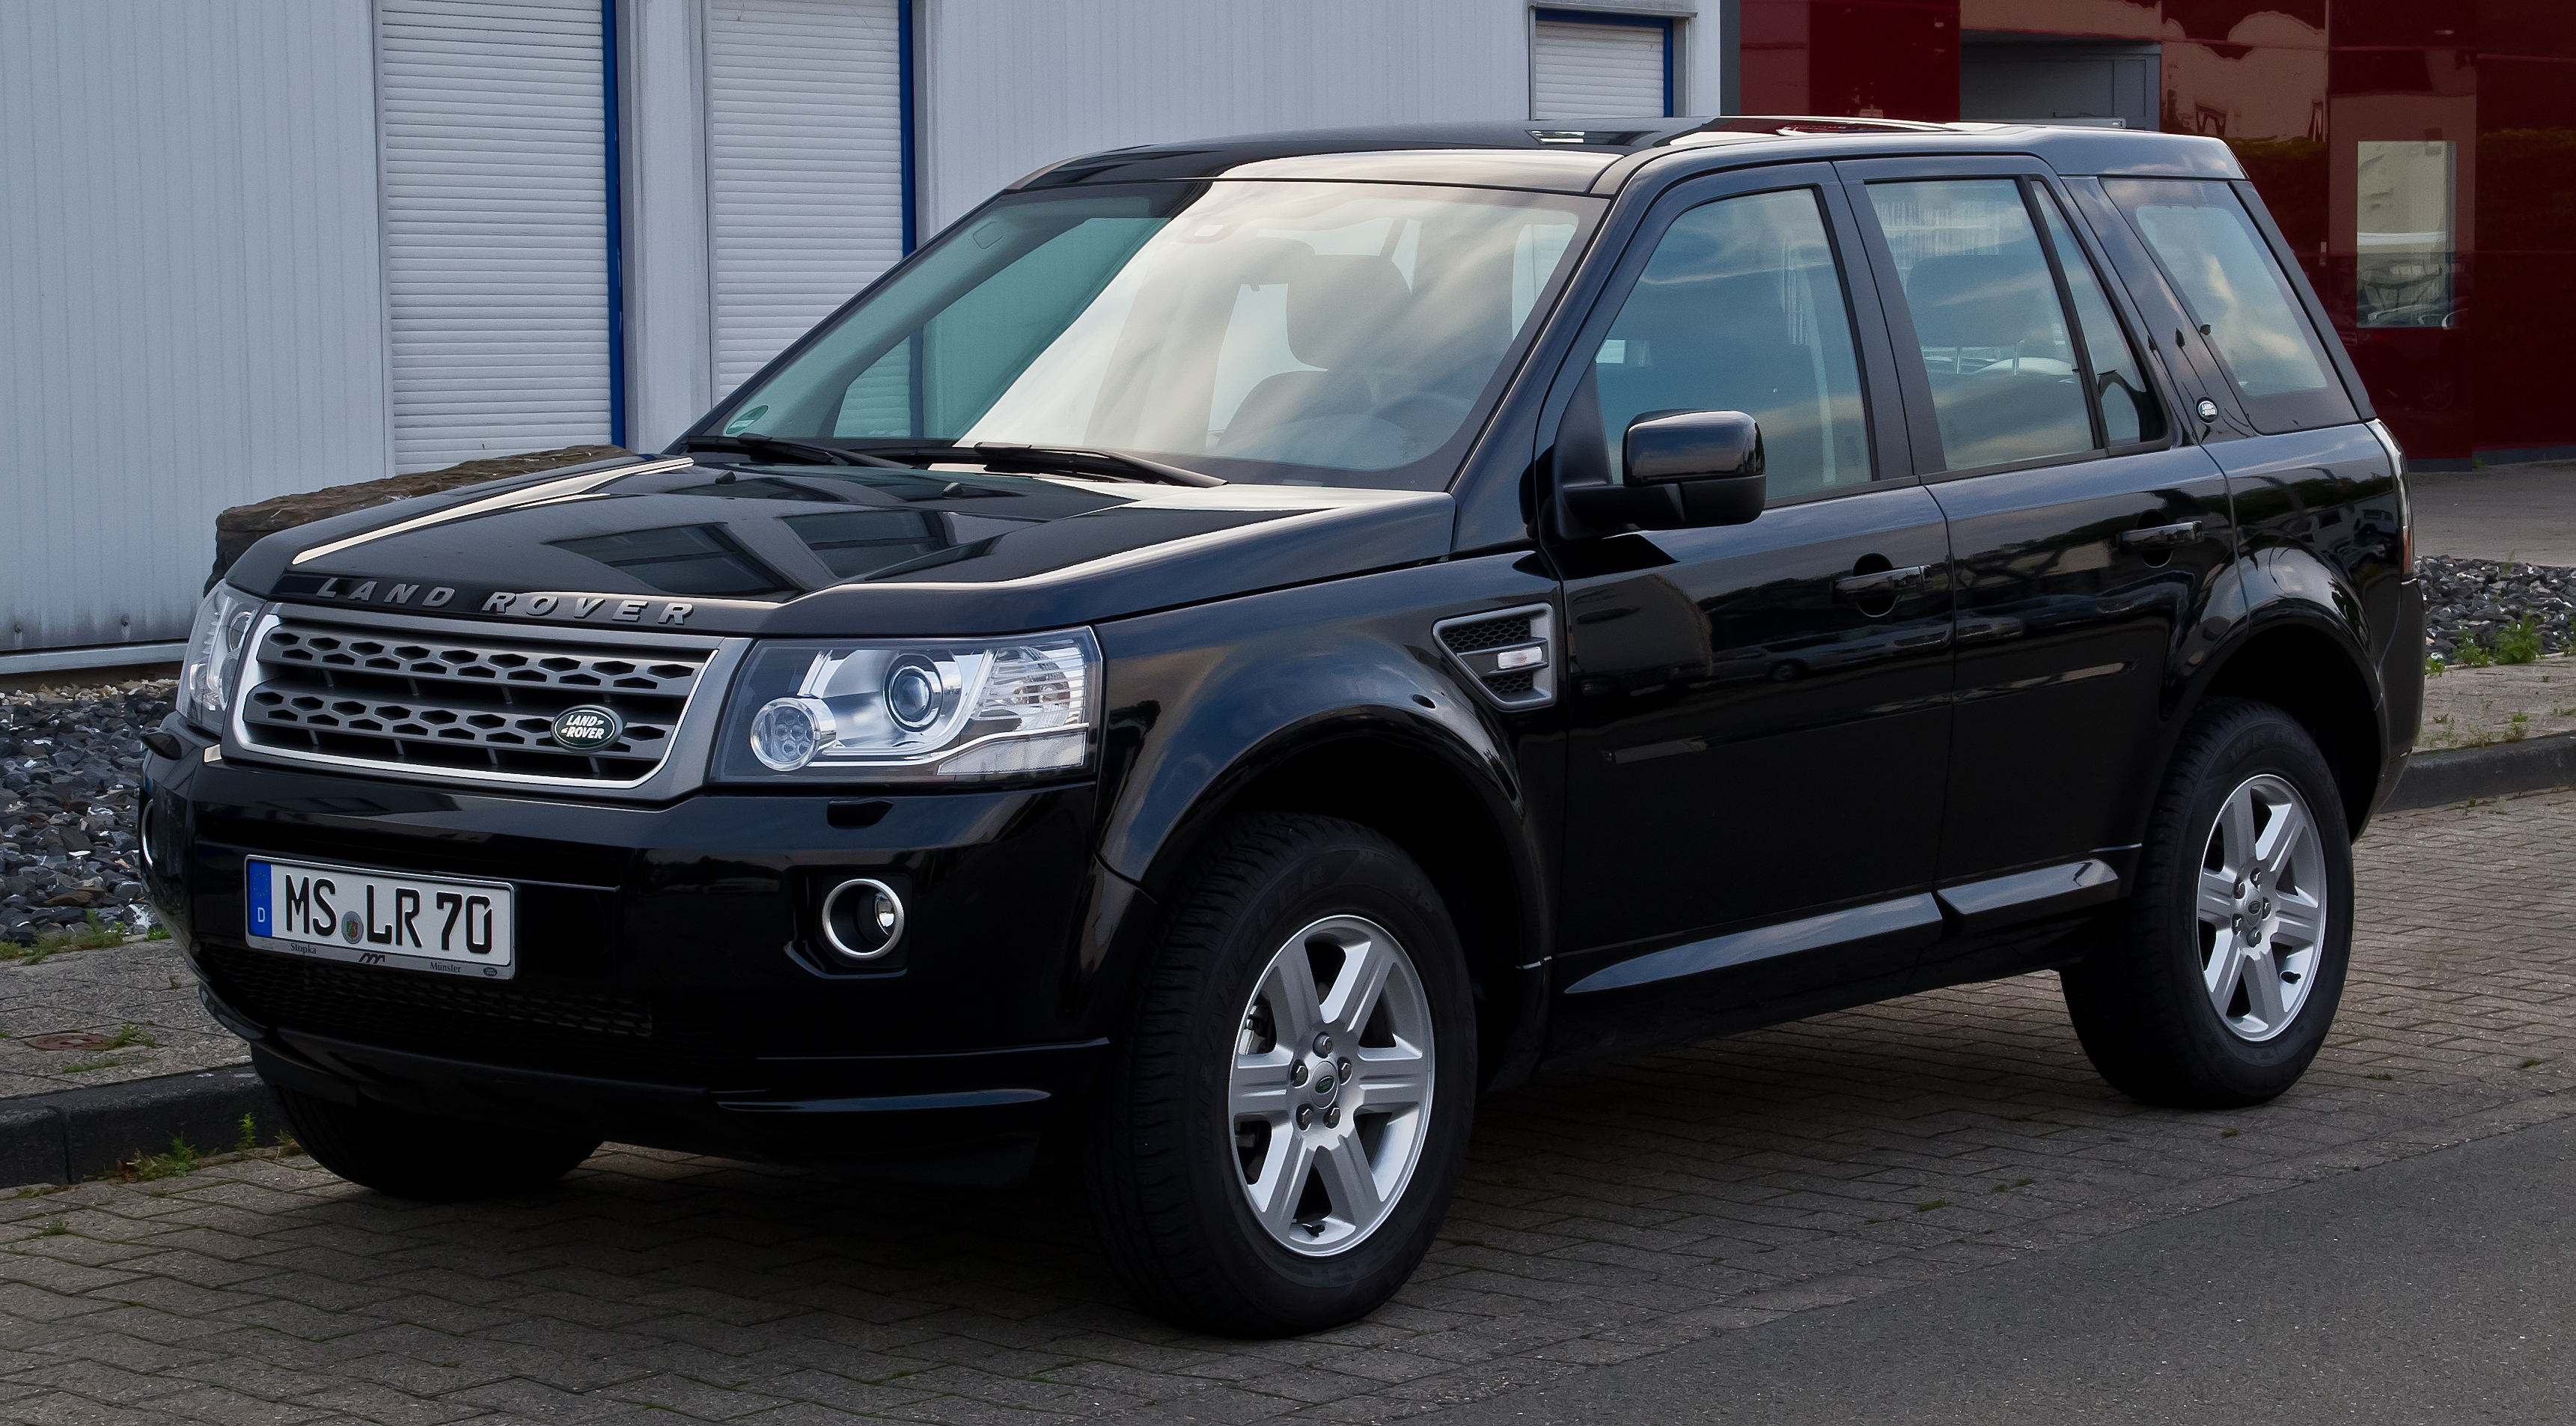 Land rover freelander photo - 2